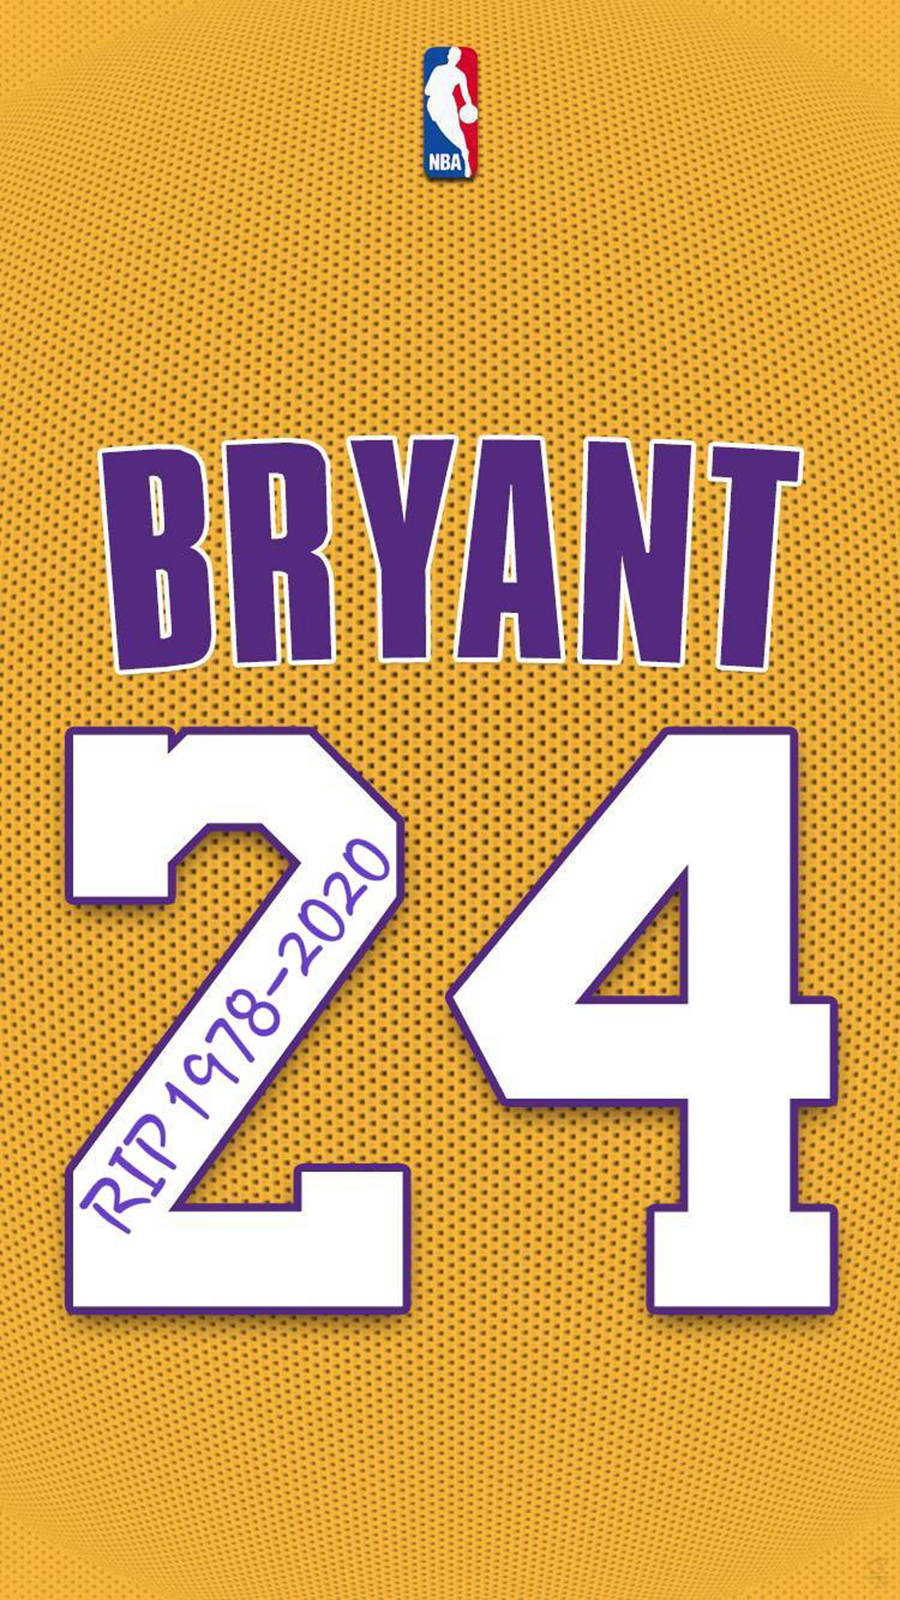 Kobe Bryant Wallpapers Now Download For Your Device